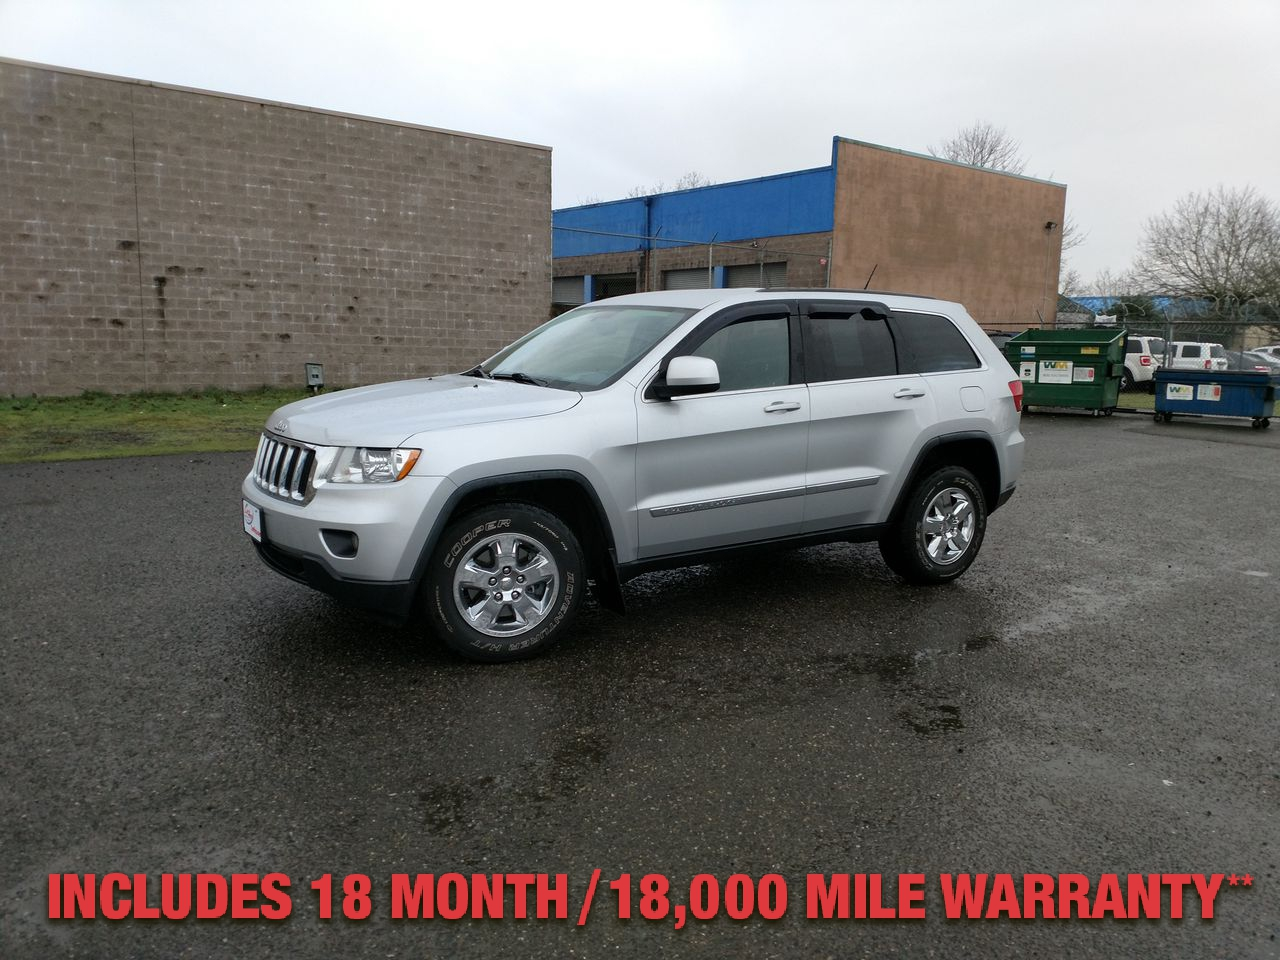 Pre-Owned 2012 JEEP GRAND CHEROKEE Laredo Spo